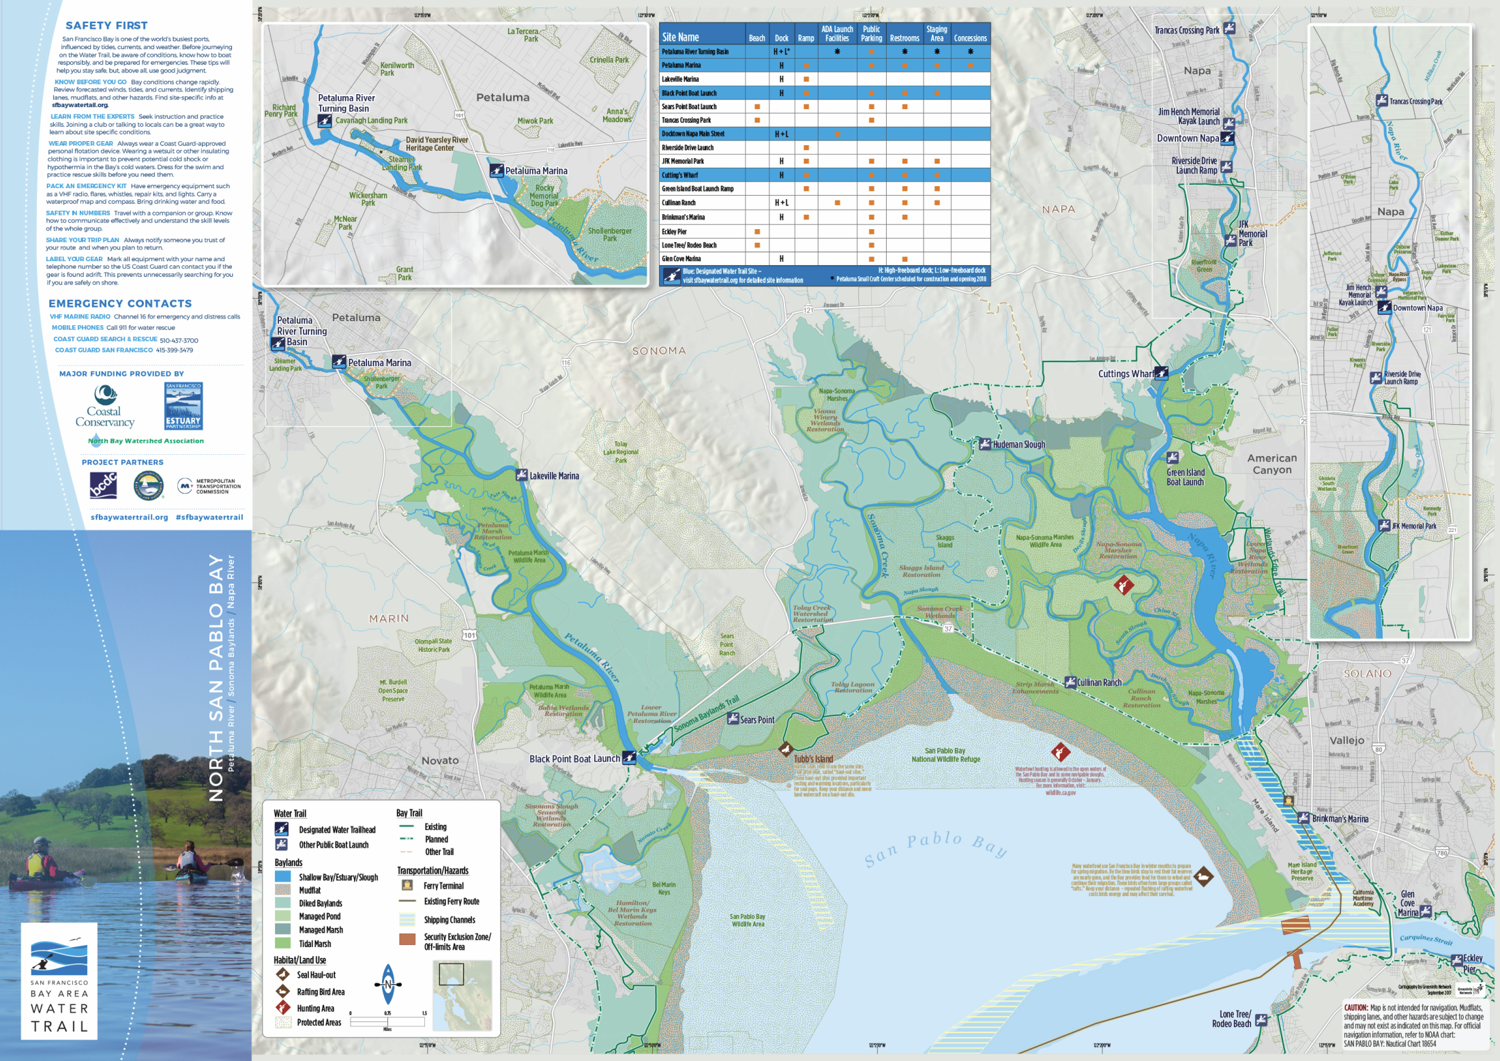 Publication of Five Waterproof Water Trail Maps for the San